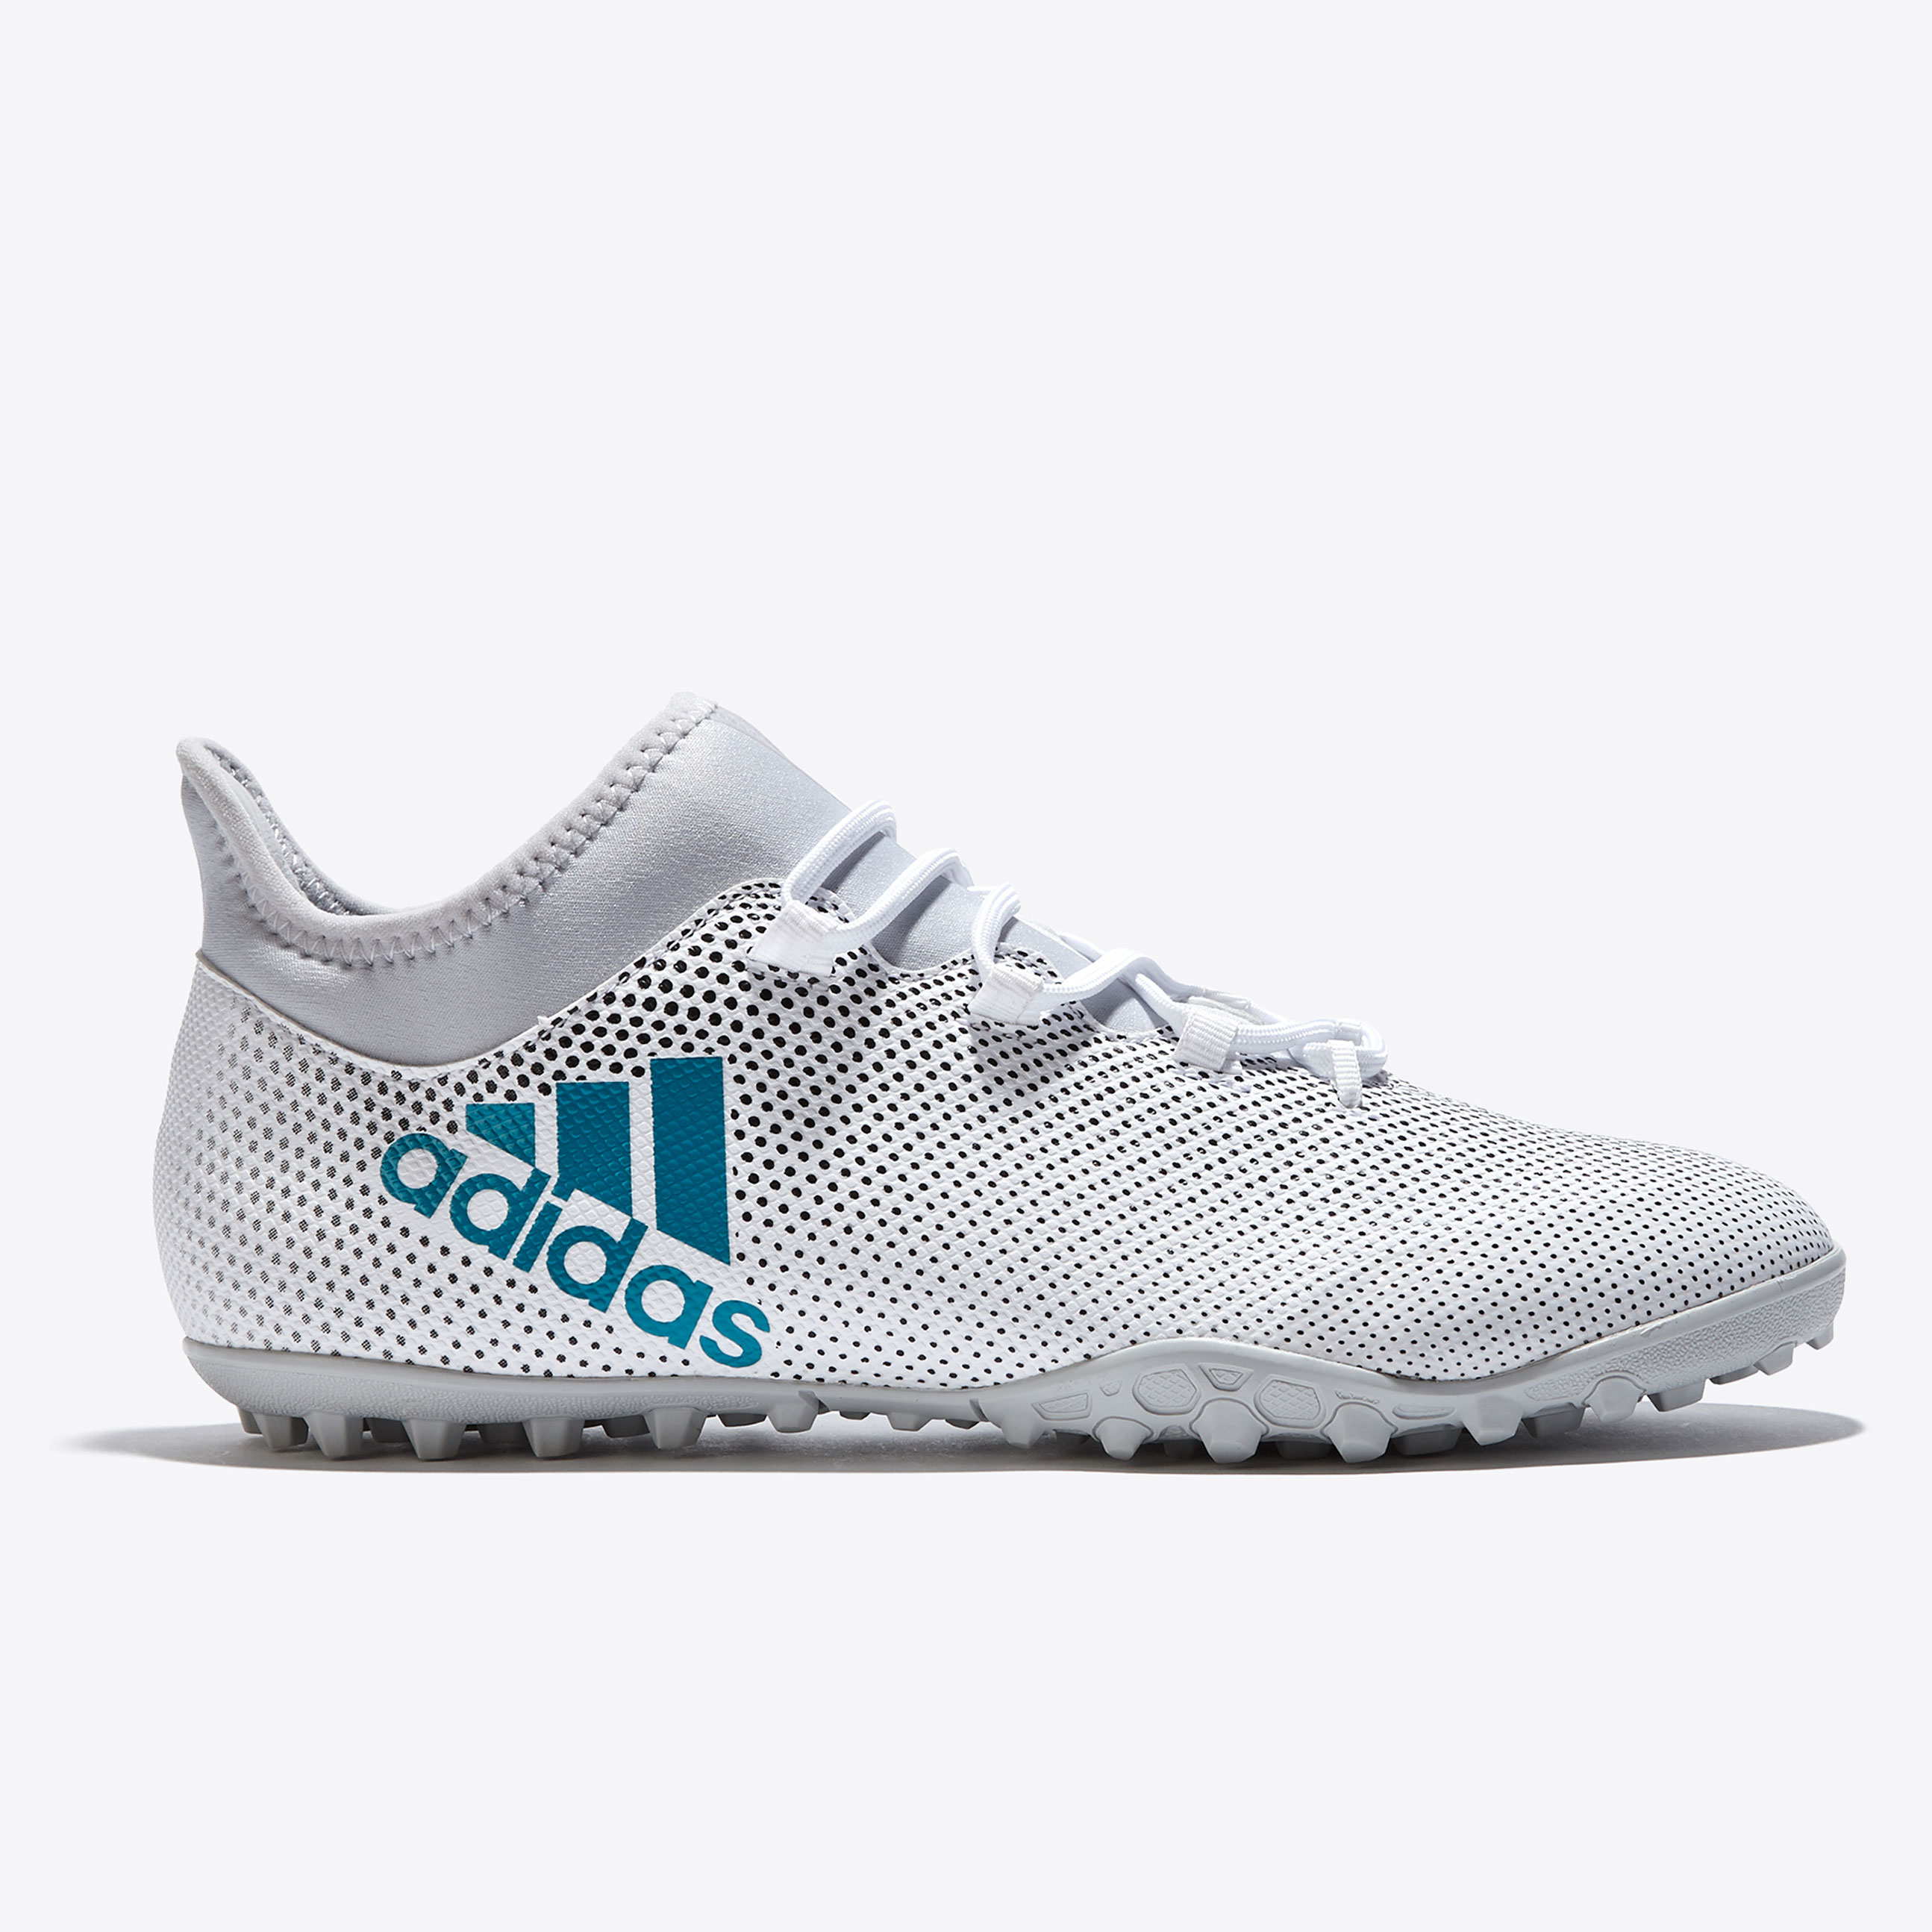 adidas X Tango 17.3 Astroturf Trainers - White/Energy Blue/Clear Grey